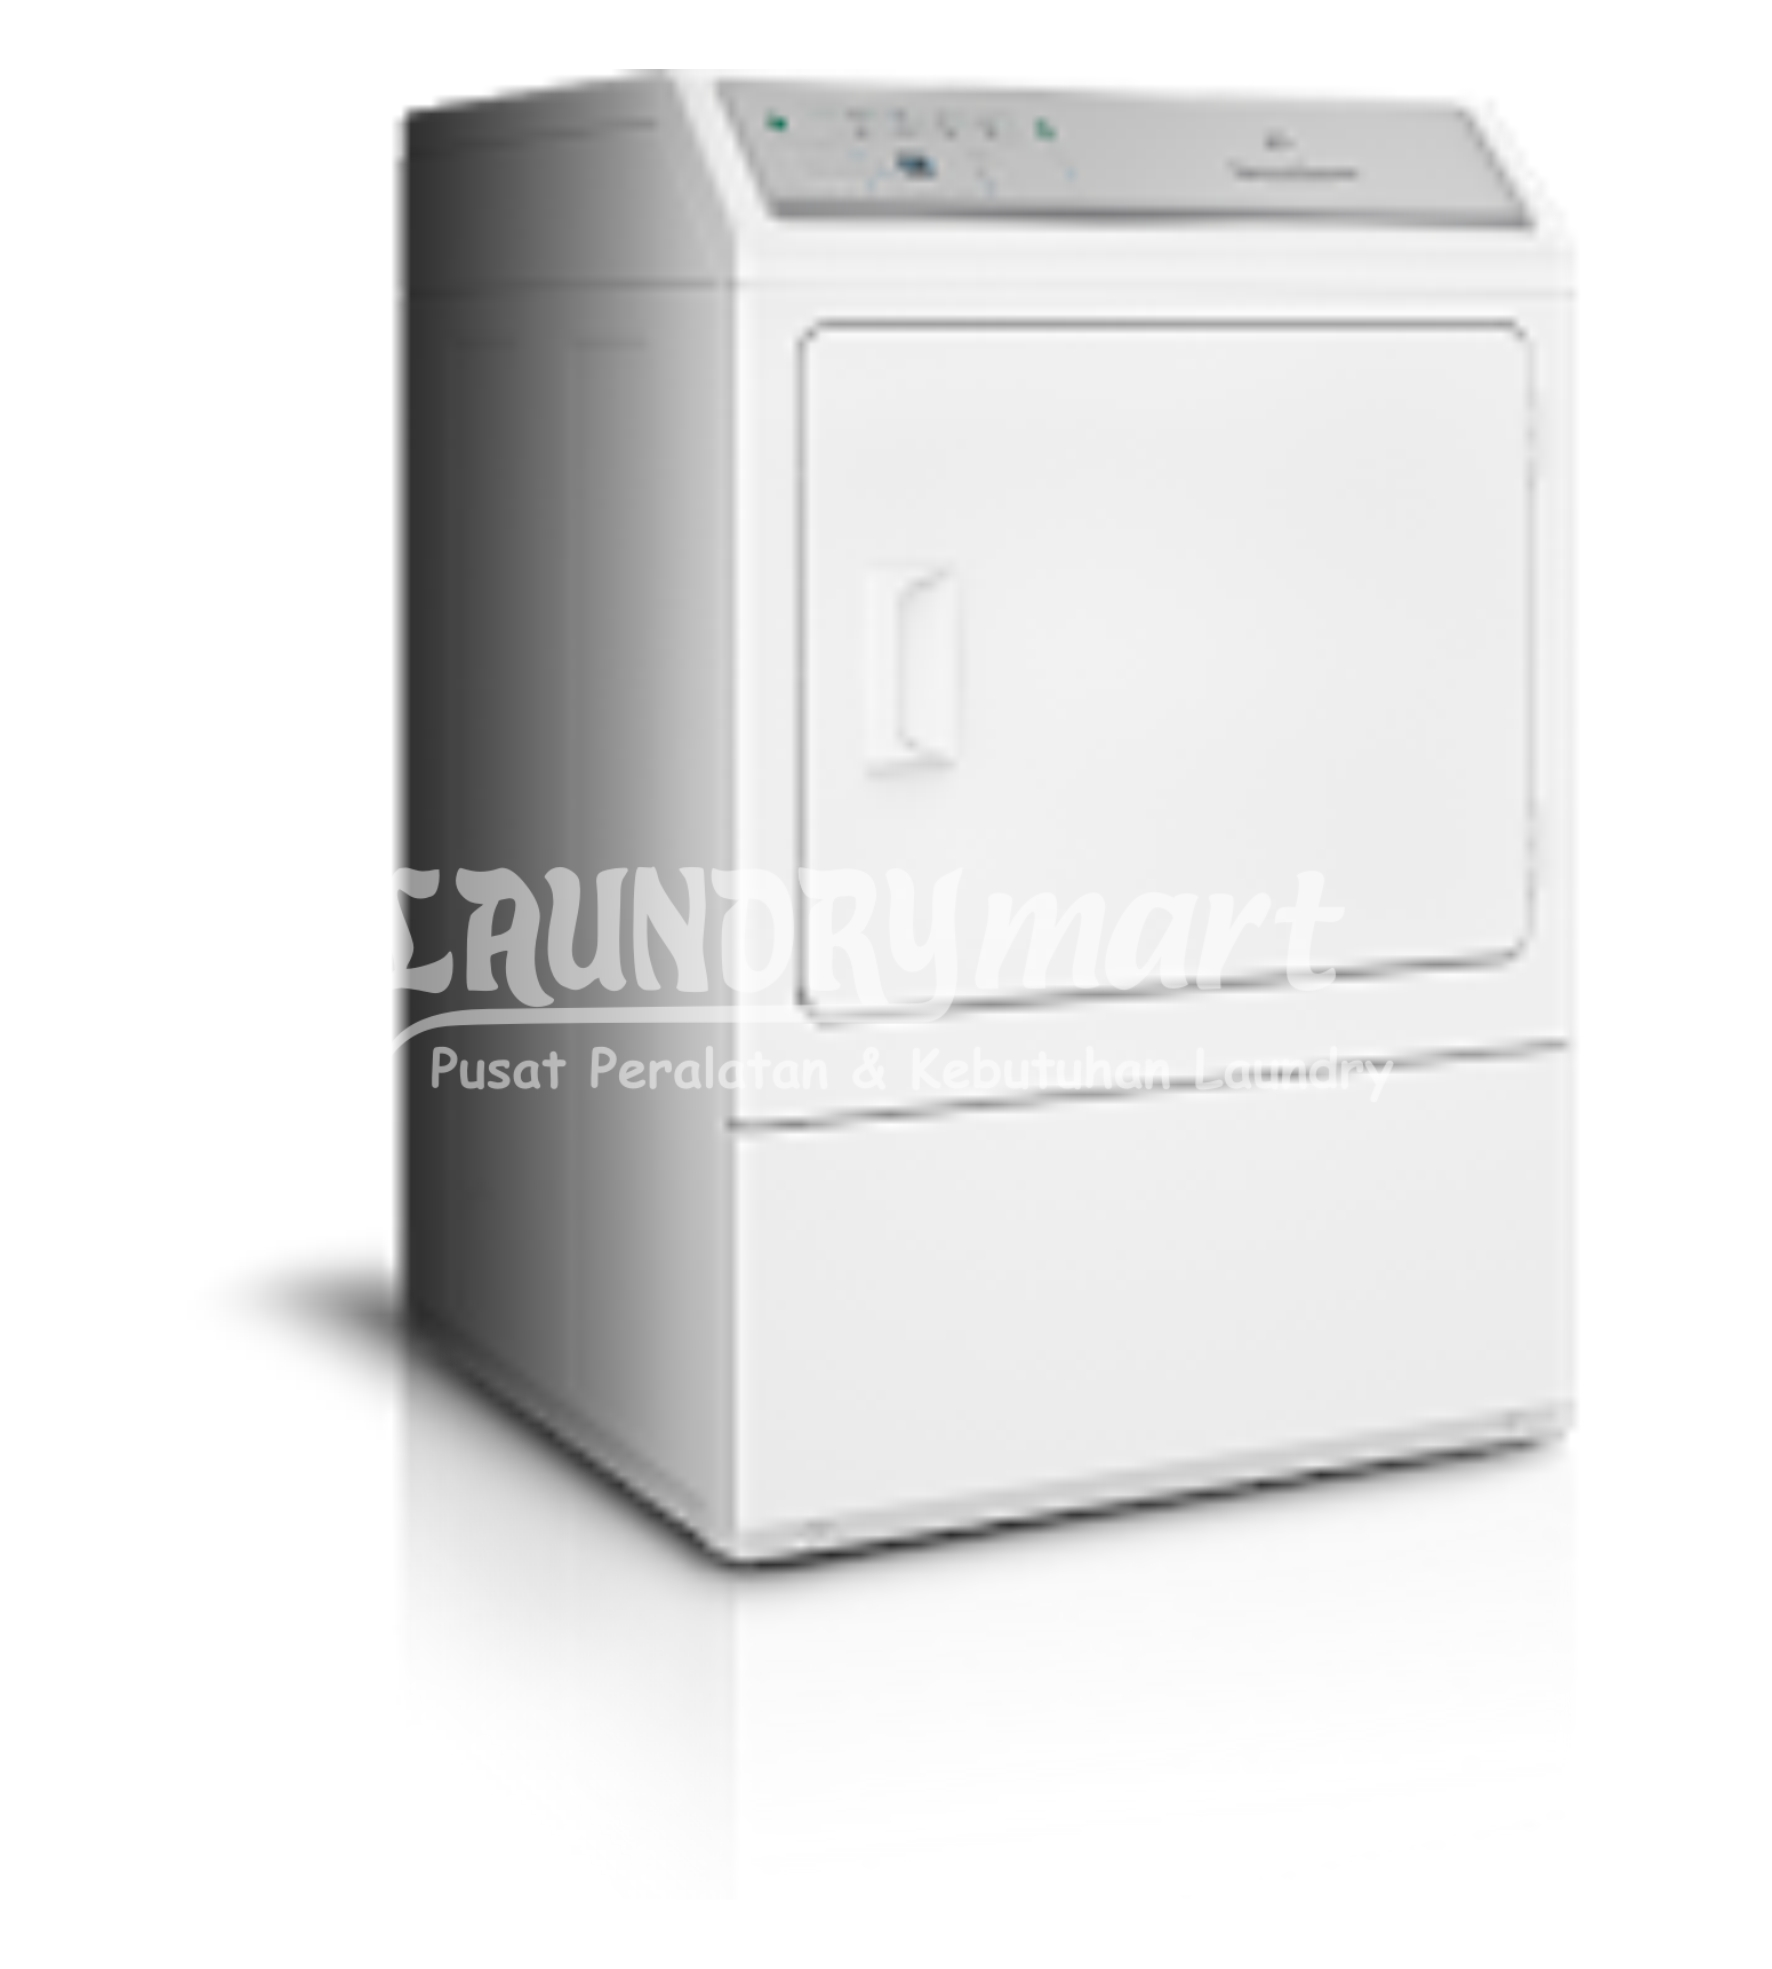 Dryer digital pengering speedqueen LDLE5BG - Dryer / Pengering Speedqueen Digital LDLE5BG